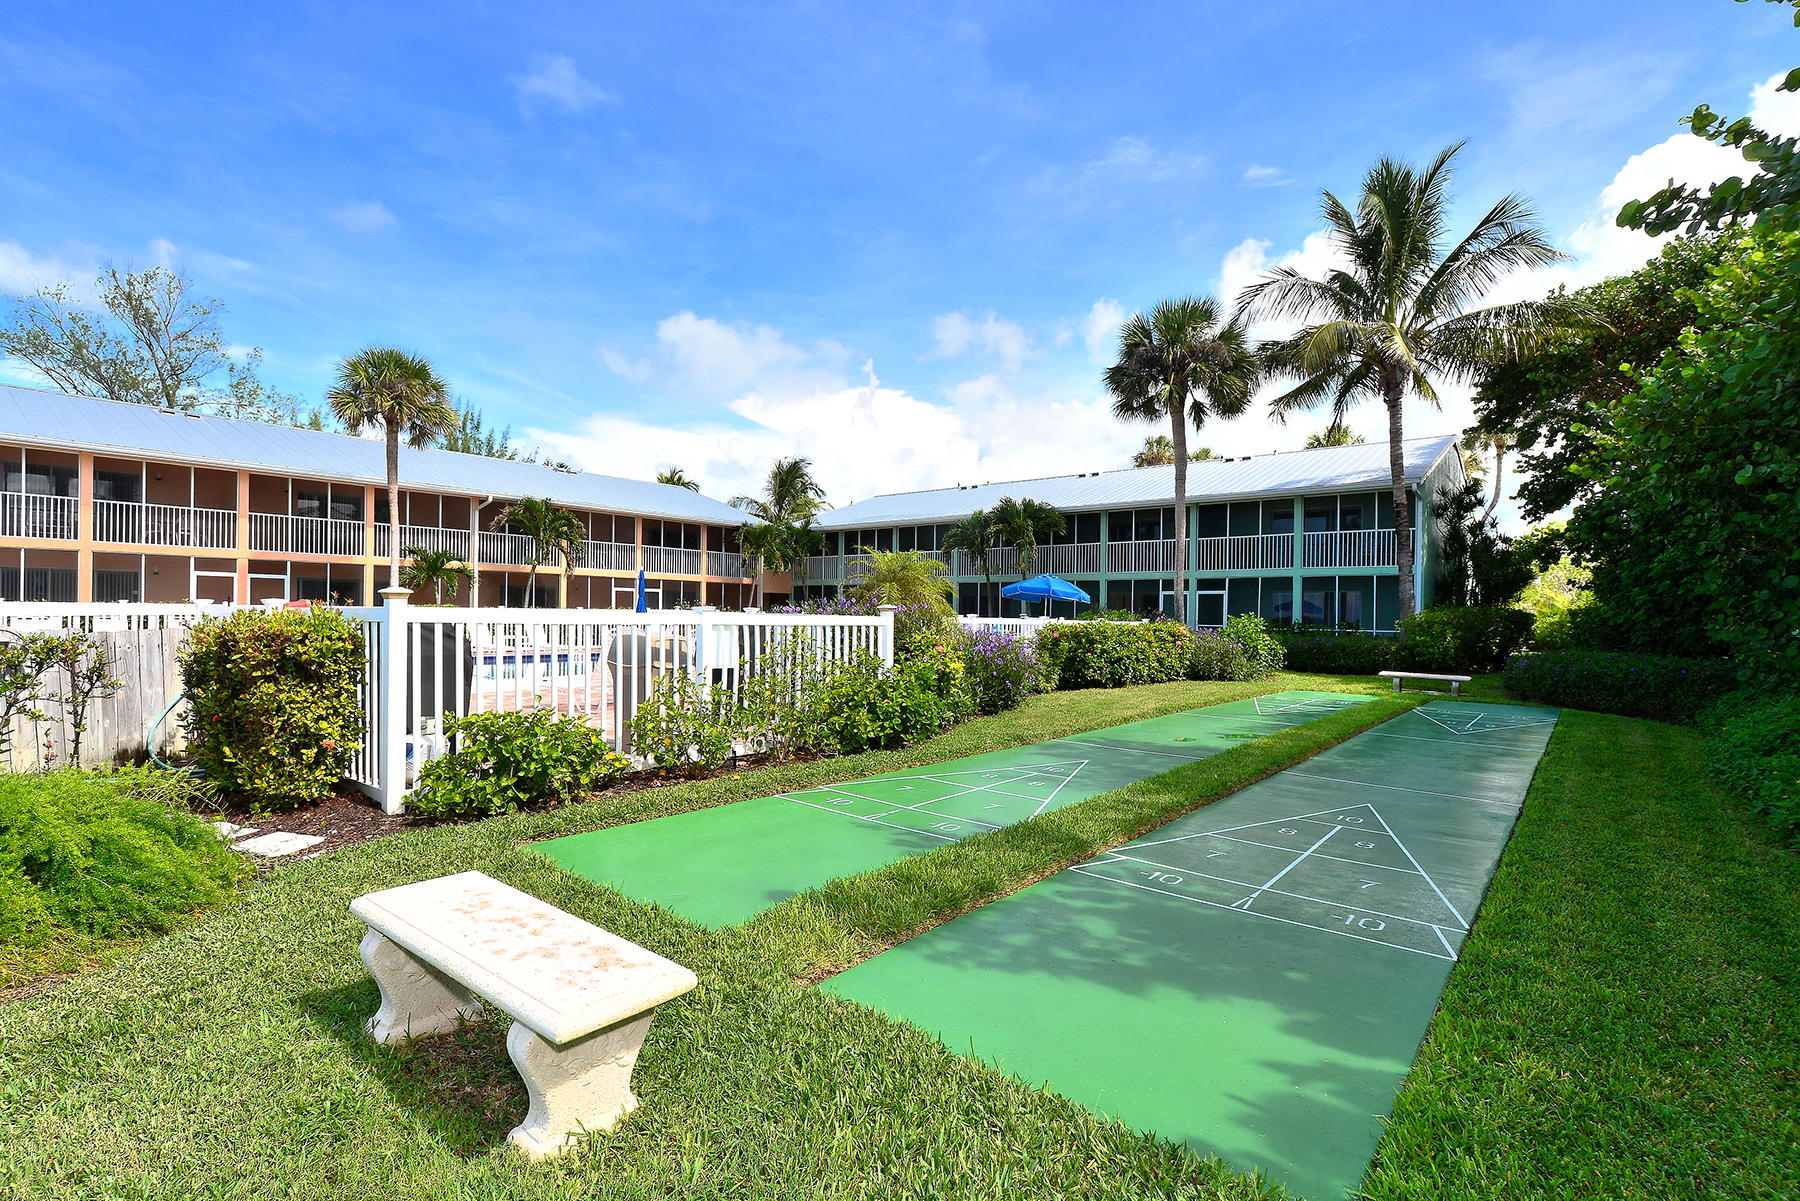 Condominium for Sale at LONGBOAT KEY 5841 Gulf Of Mexico Dr 242 Longboat Key, Florida, 34228 United States